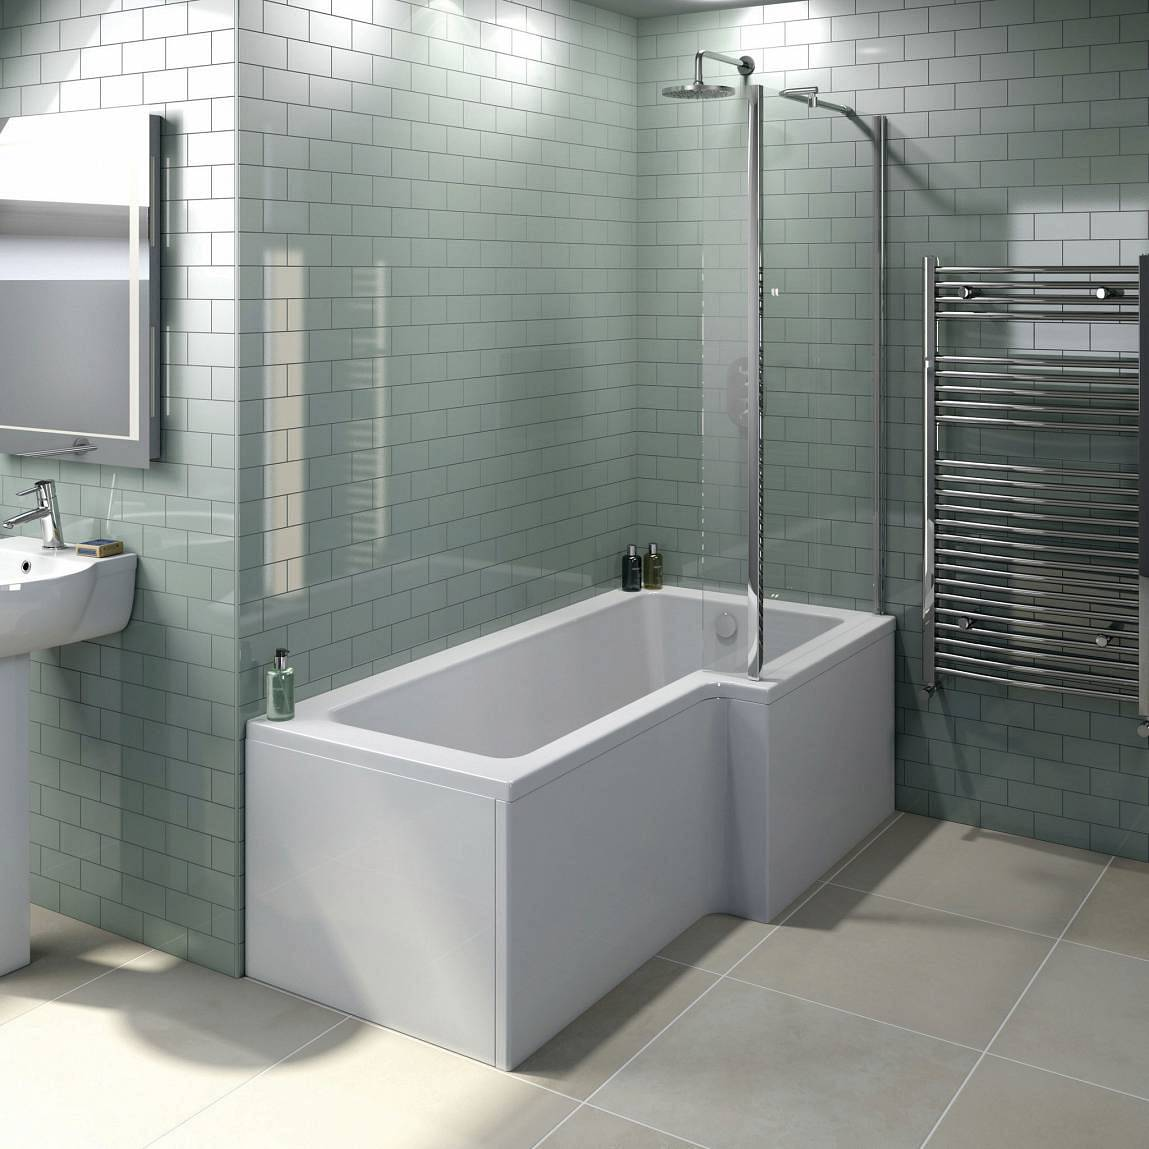 The Space Saving Boston Shower Bath